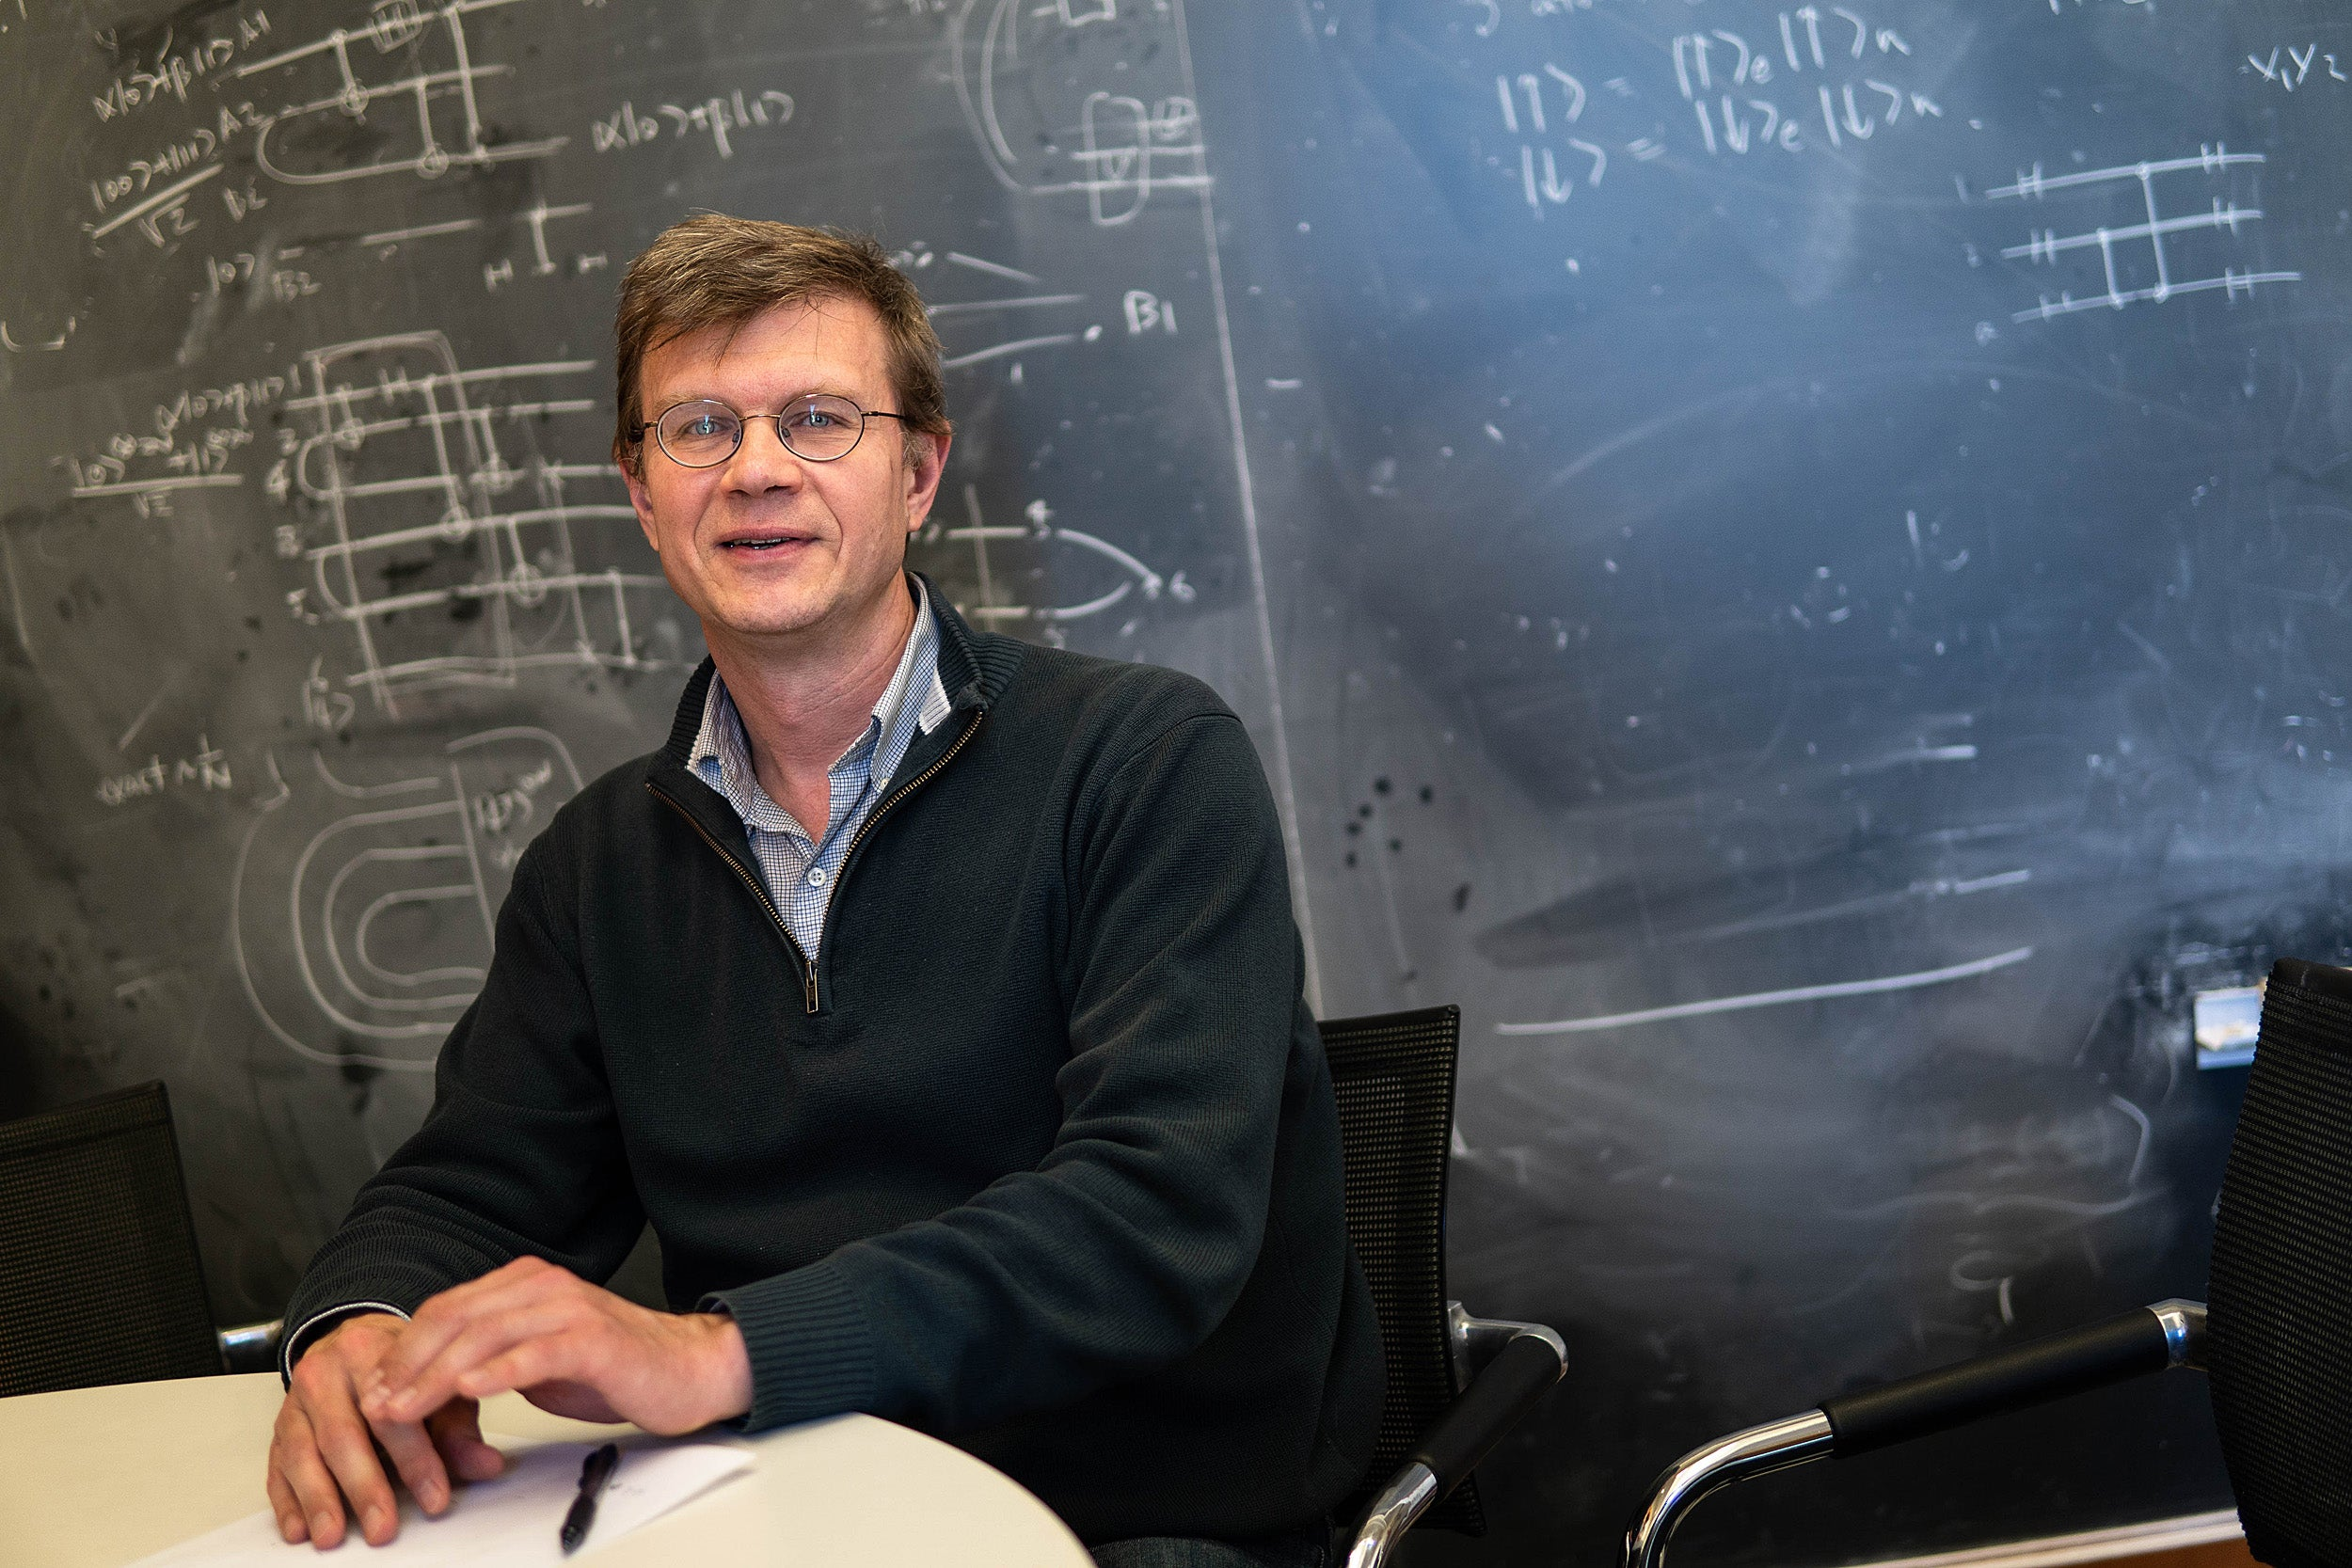 Professor Mikhail Lukin, co-director of Harvard's Quantum Initiative, in his classroom with a blackboard filed with equations.